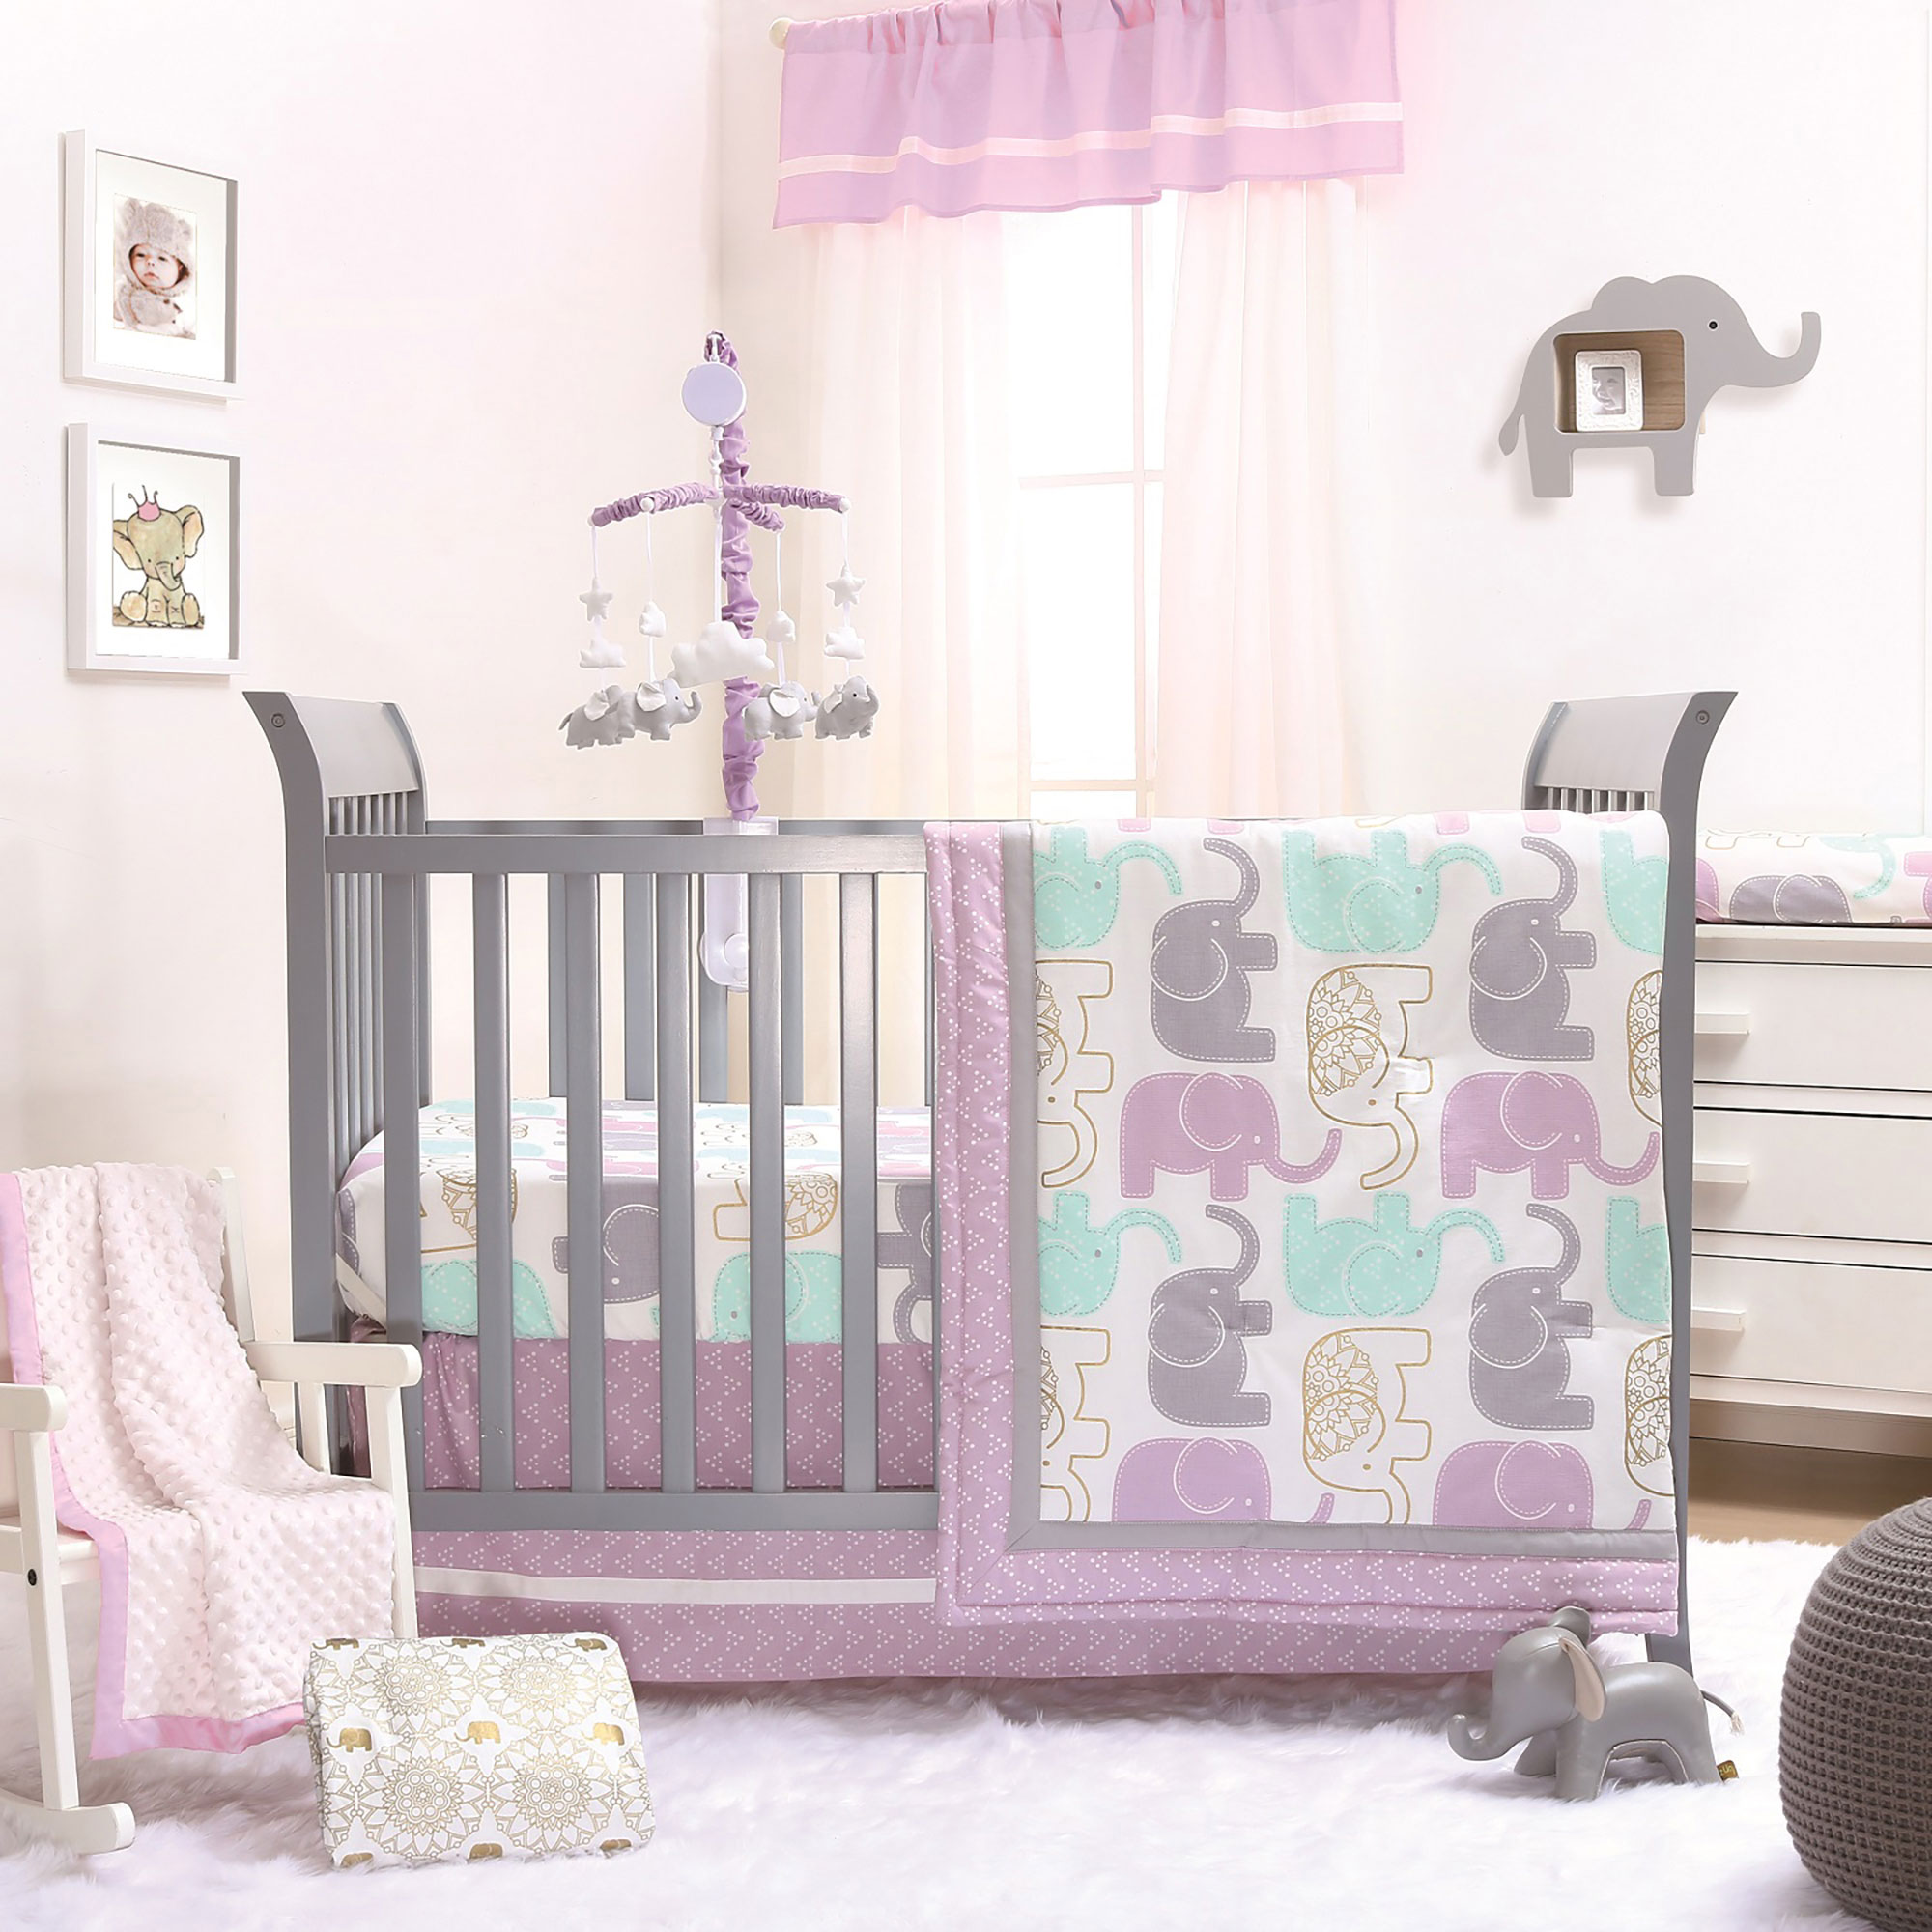 little peanut lilac gold elephant baby girl crib bedding 11 piece sleep set 841297125850 ebay. Black Bedroom Furniture Sets. Home Design Ideas